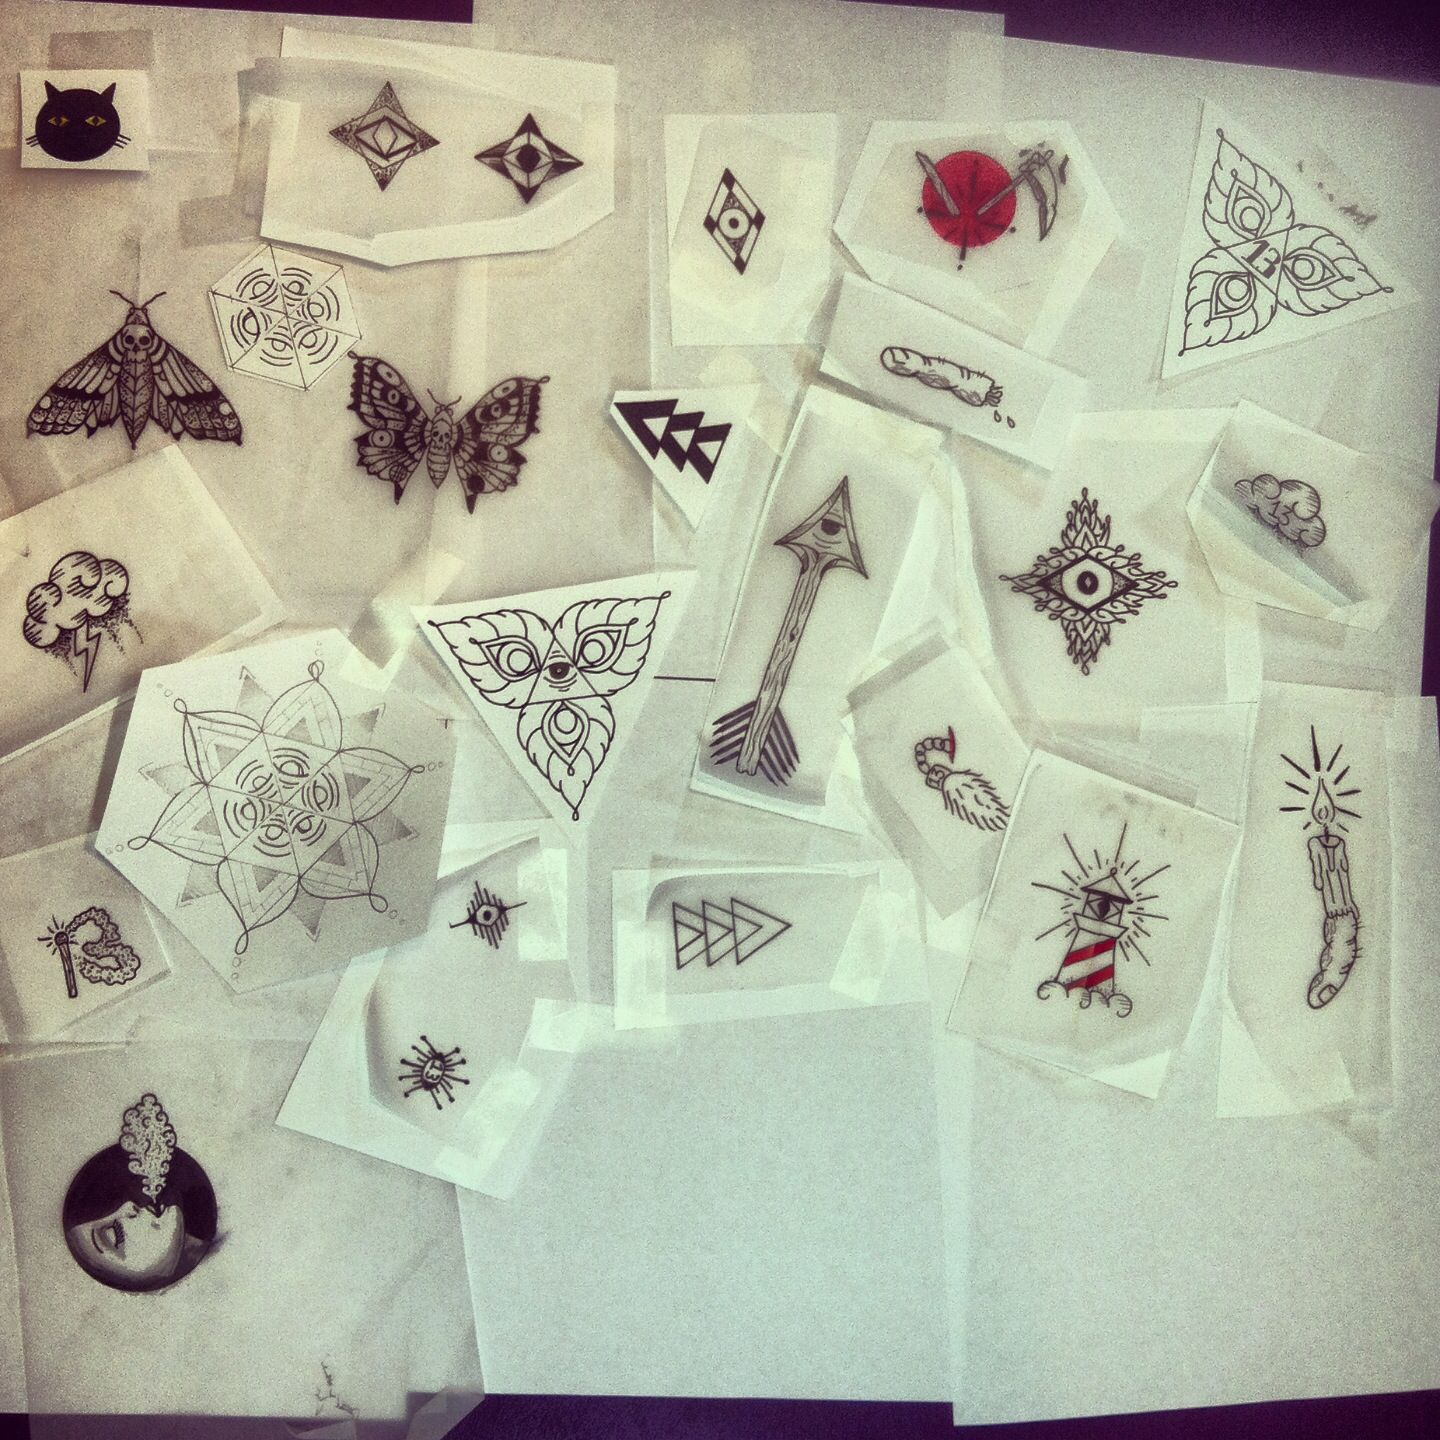 Friday the 13th tattoo designs by Oliver kenton Friday